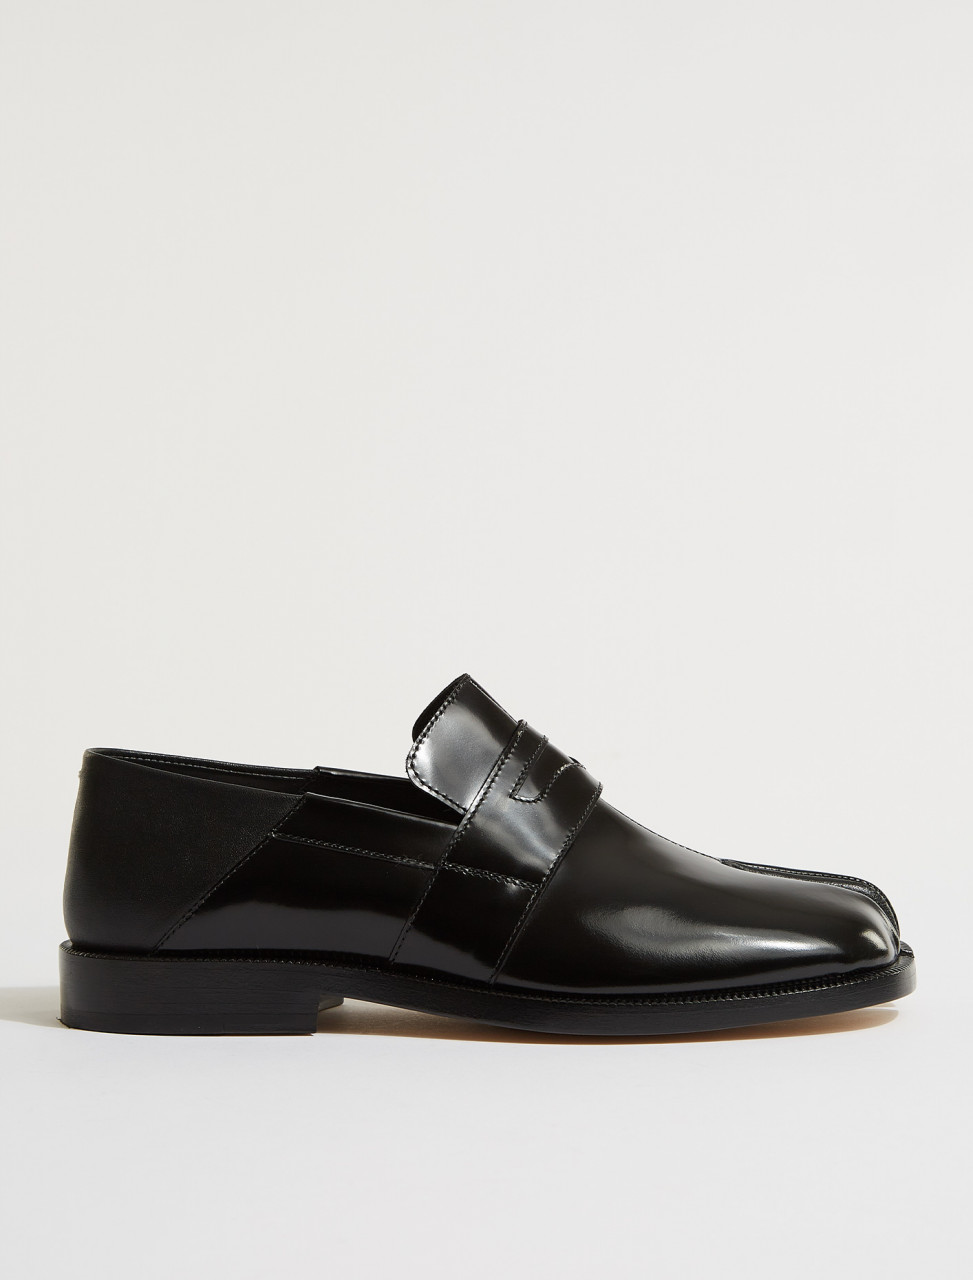 S39WR0021 MAISON MARGIELA TABI LOAFERS IN BLACK